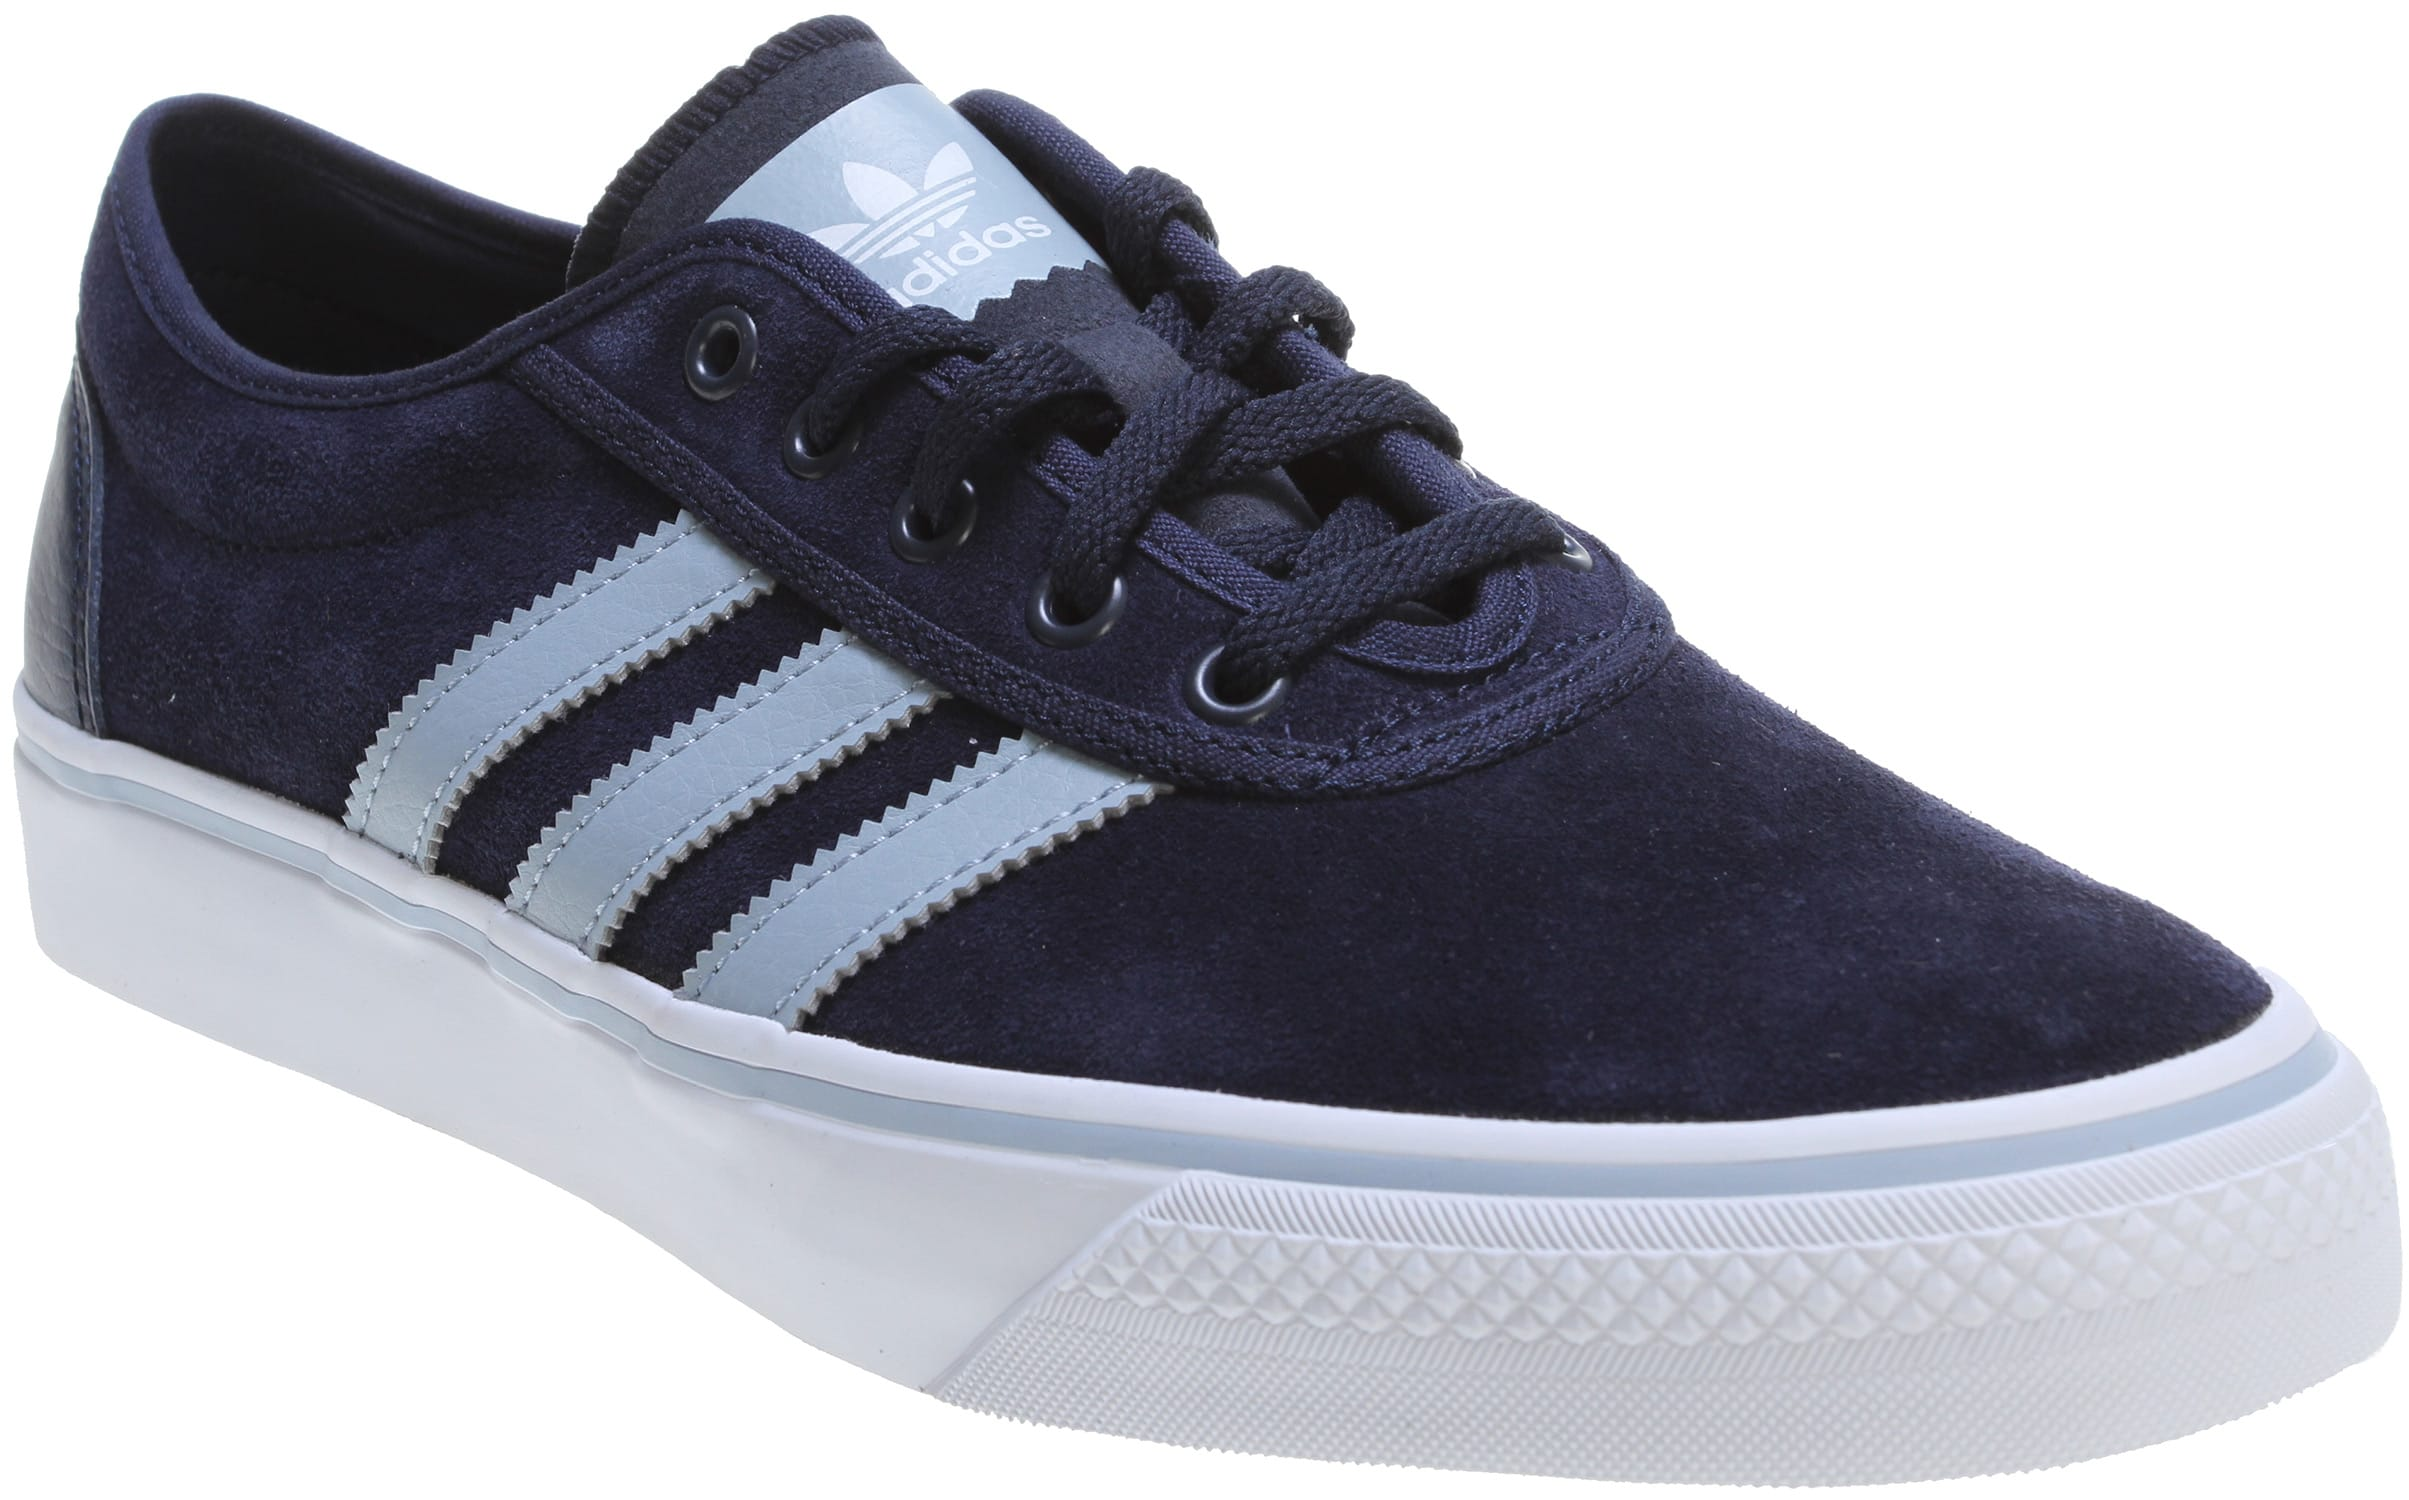 separation shoes 4b5a2 311d5 Adidas Adi-Ease Skate Shoes - thumbnail 2